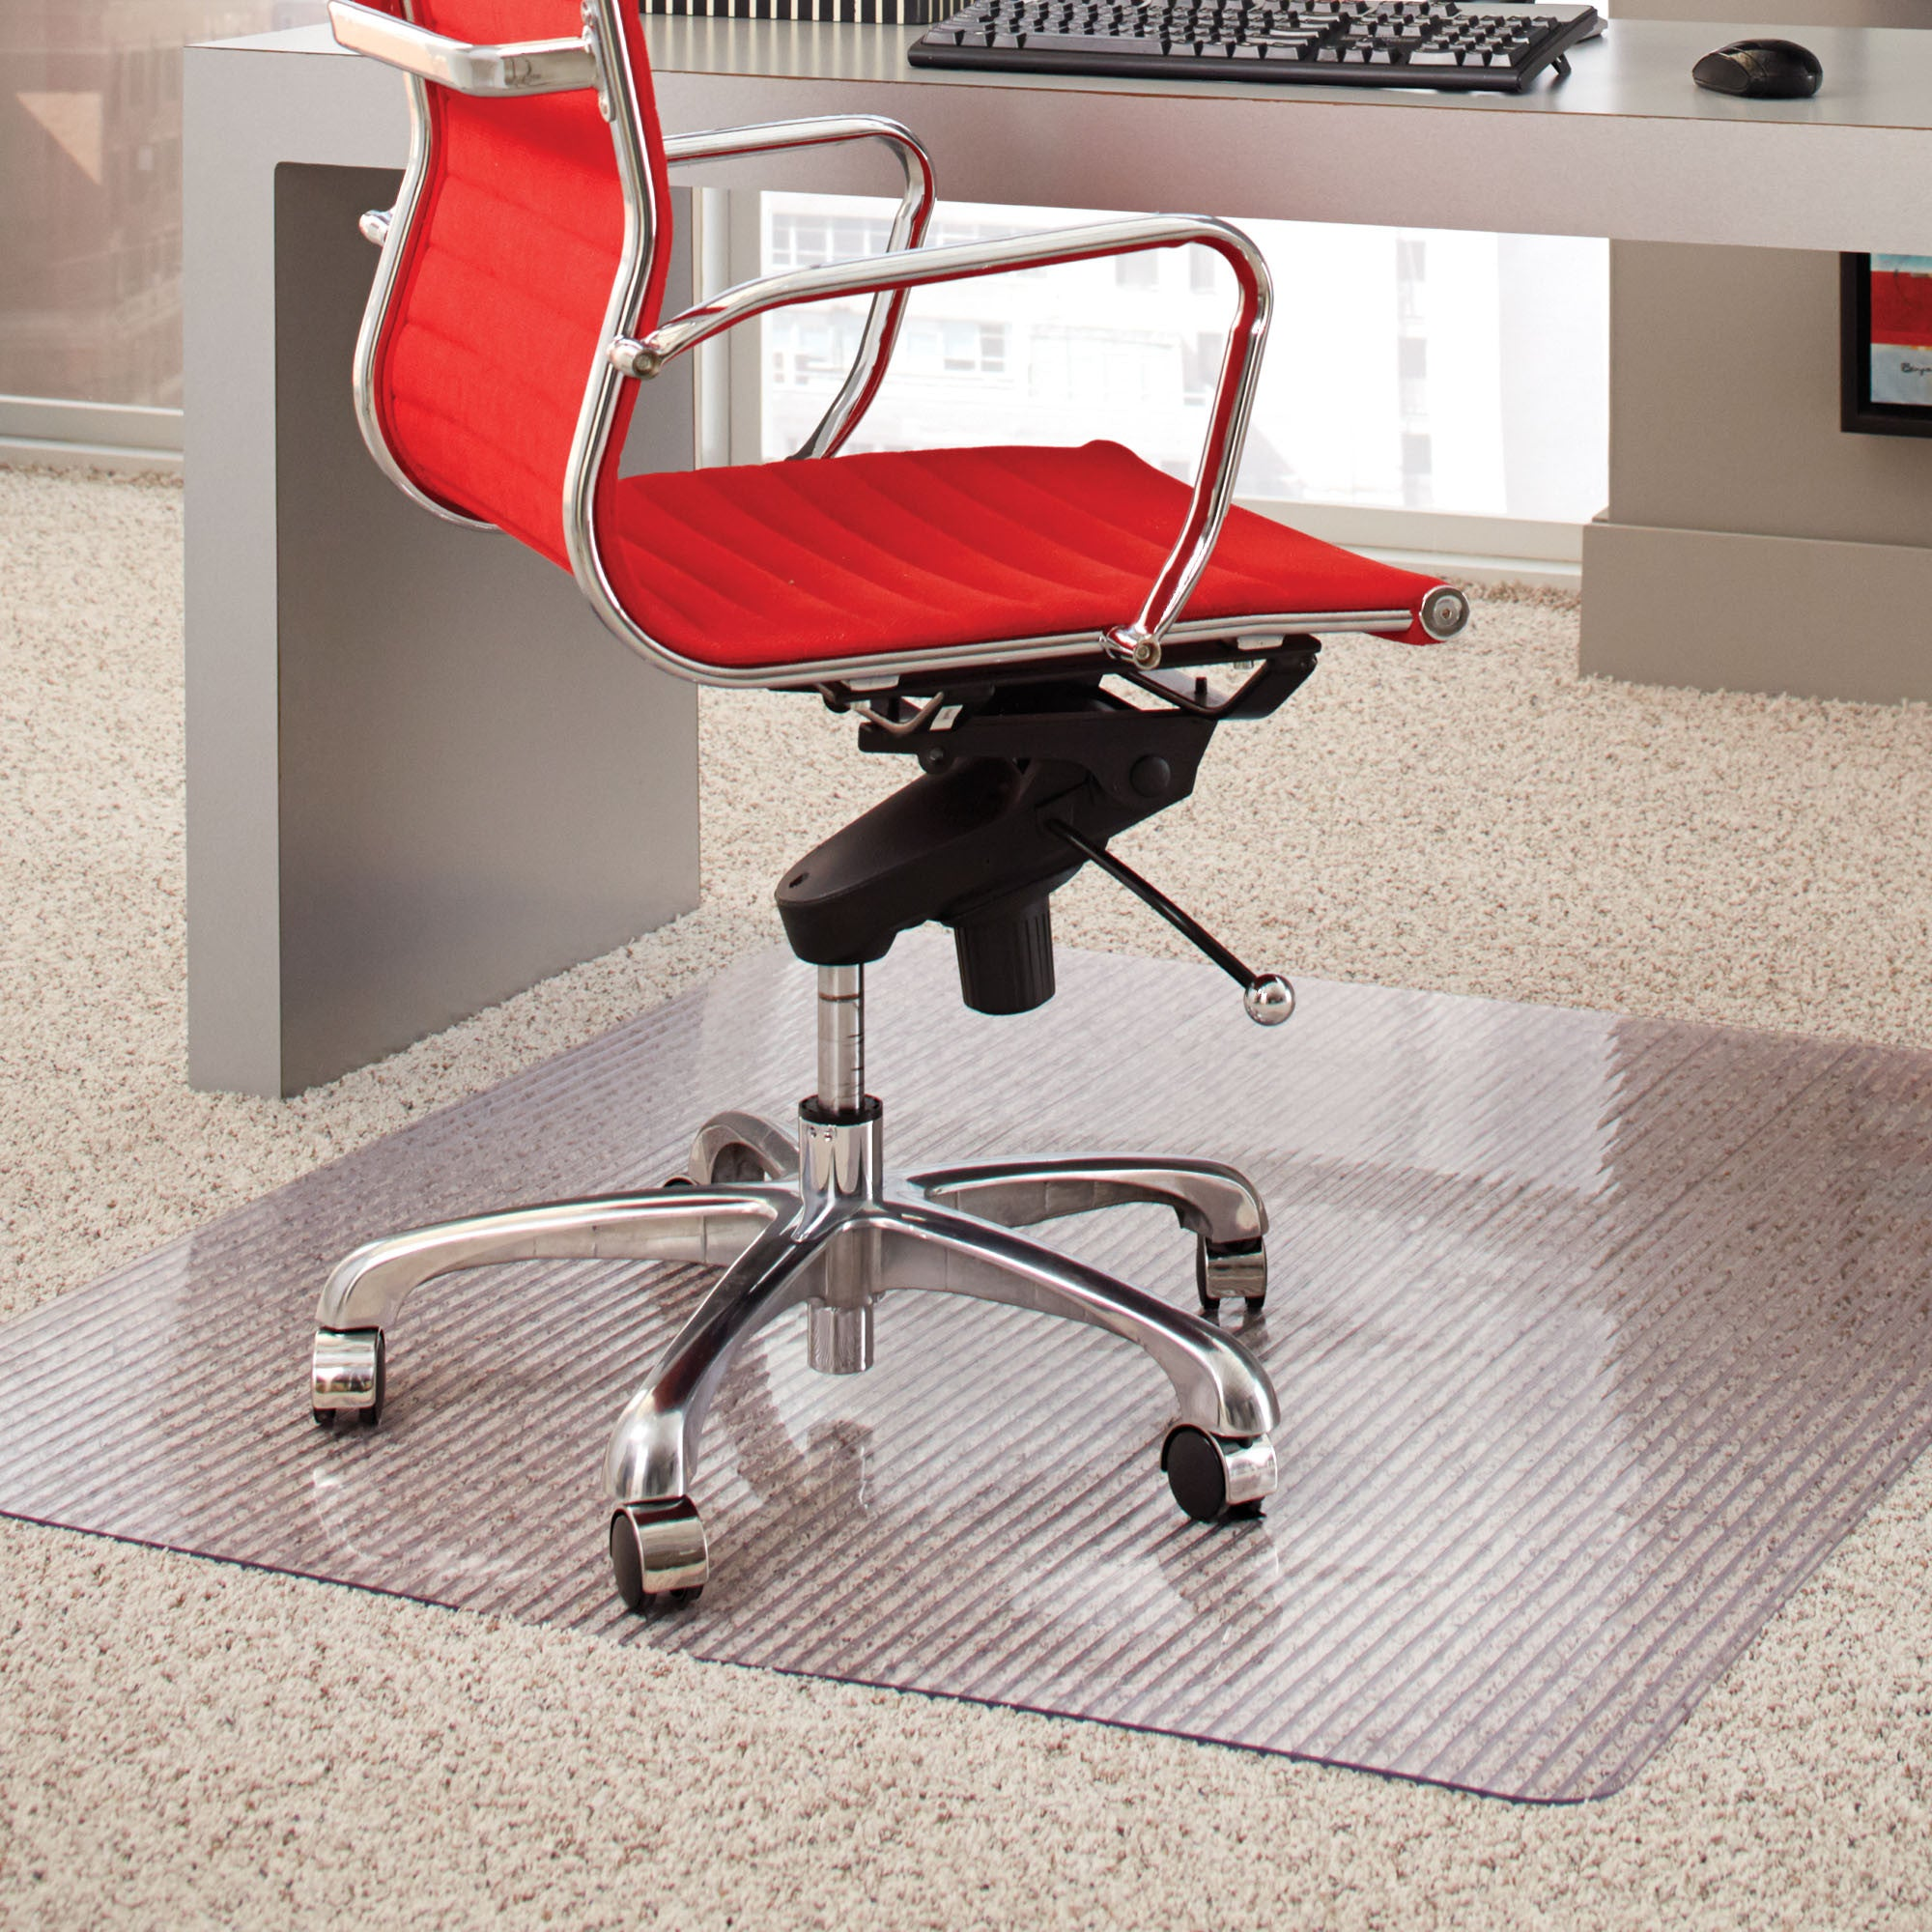 Linear Chair Mats – Wel e to Myfloormat